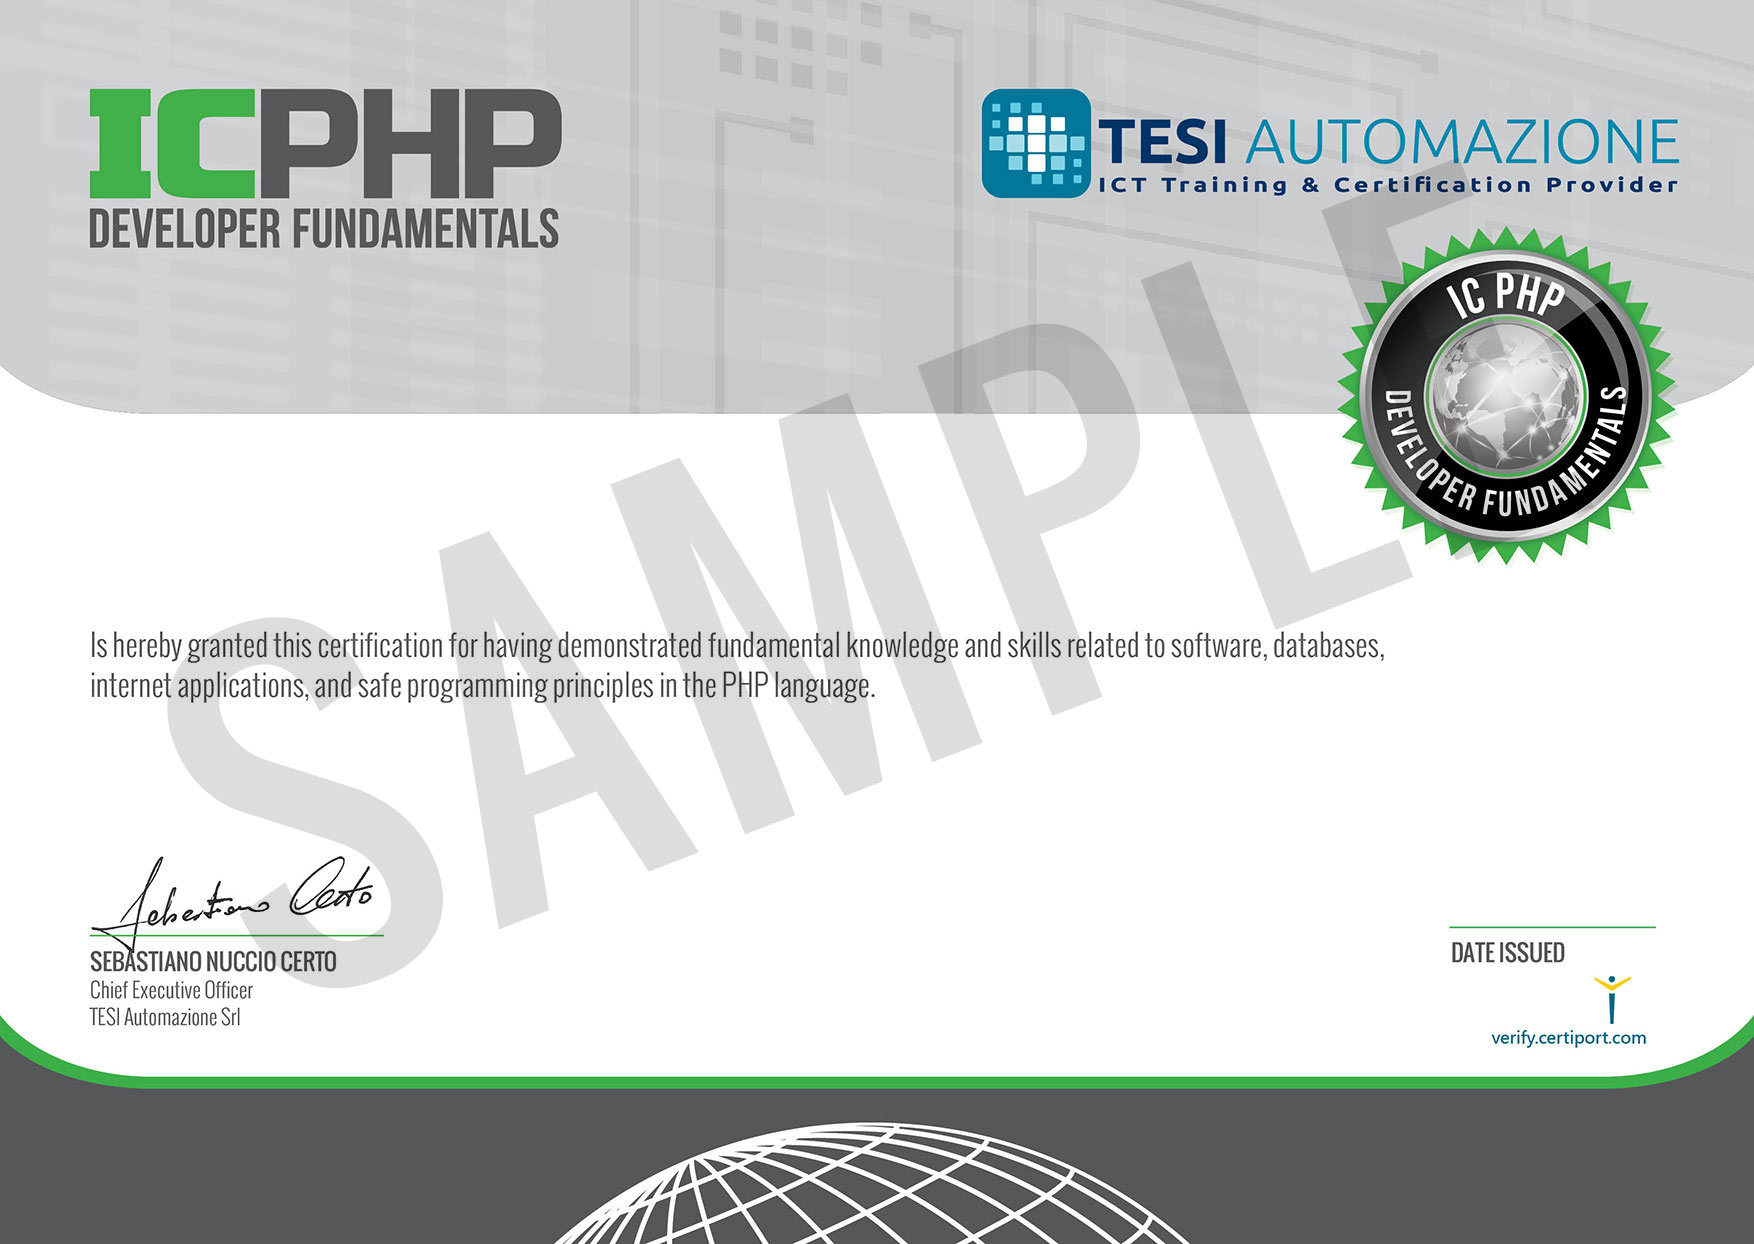 ICPHP_Certificate_A4_SAMPLE